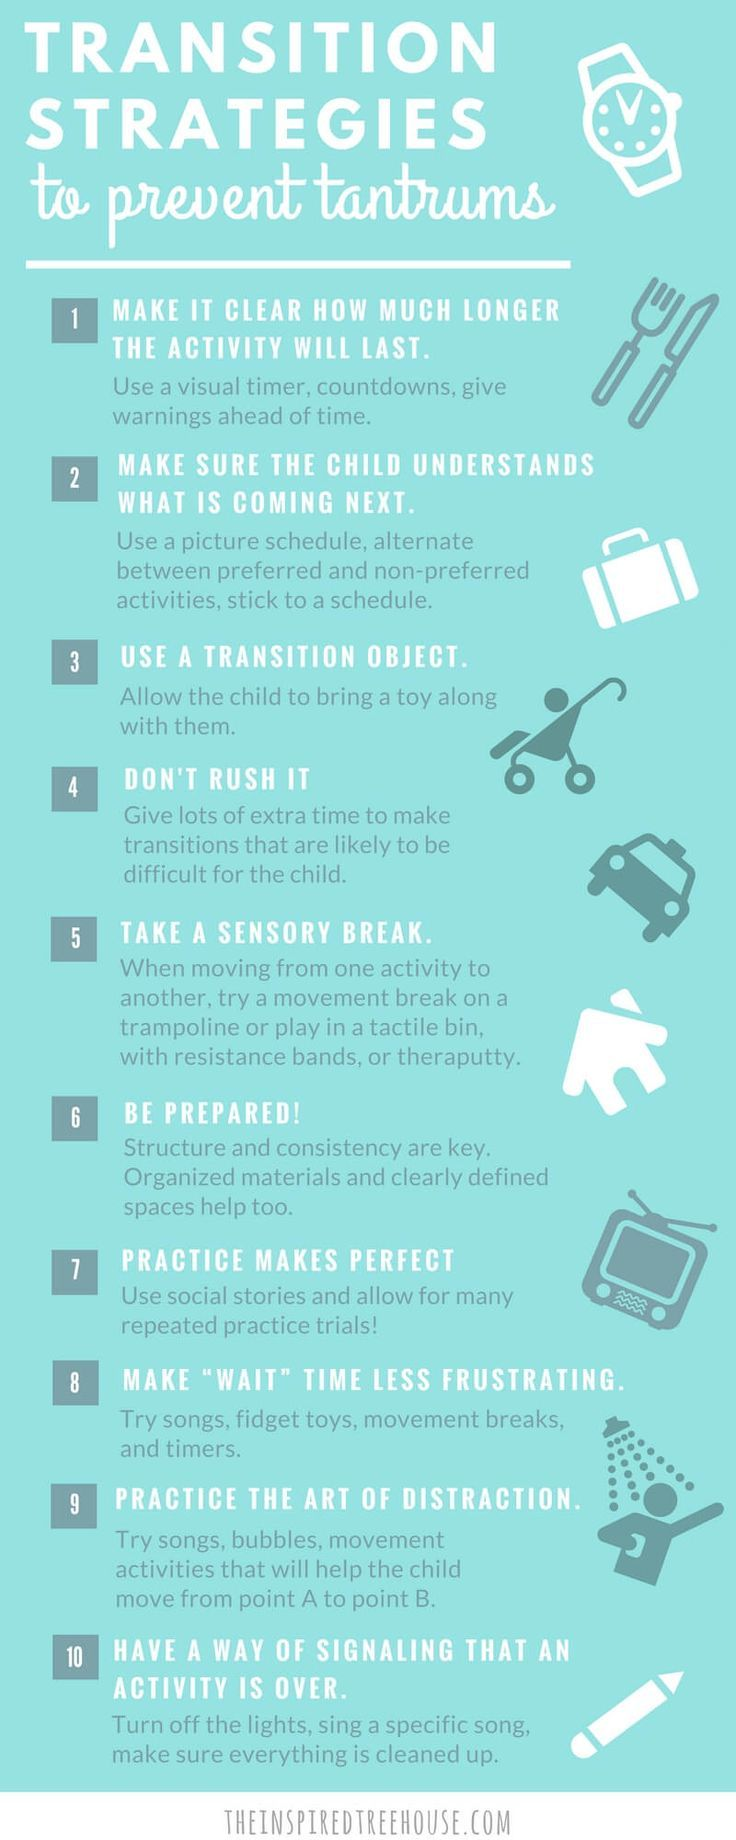 Prevent temper tantrums and emotional outbursts from your kid with these transition strategies. These magic tricks help kids cope with moving from one activity to another, such as when it's time to leave the park or to clean up toys. Every parent needs this awesome list!